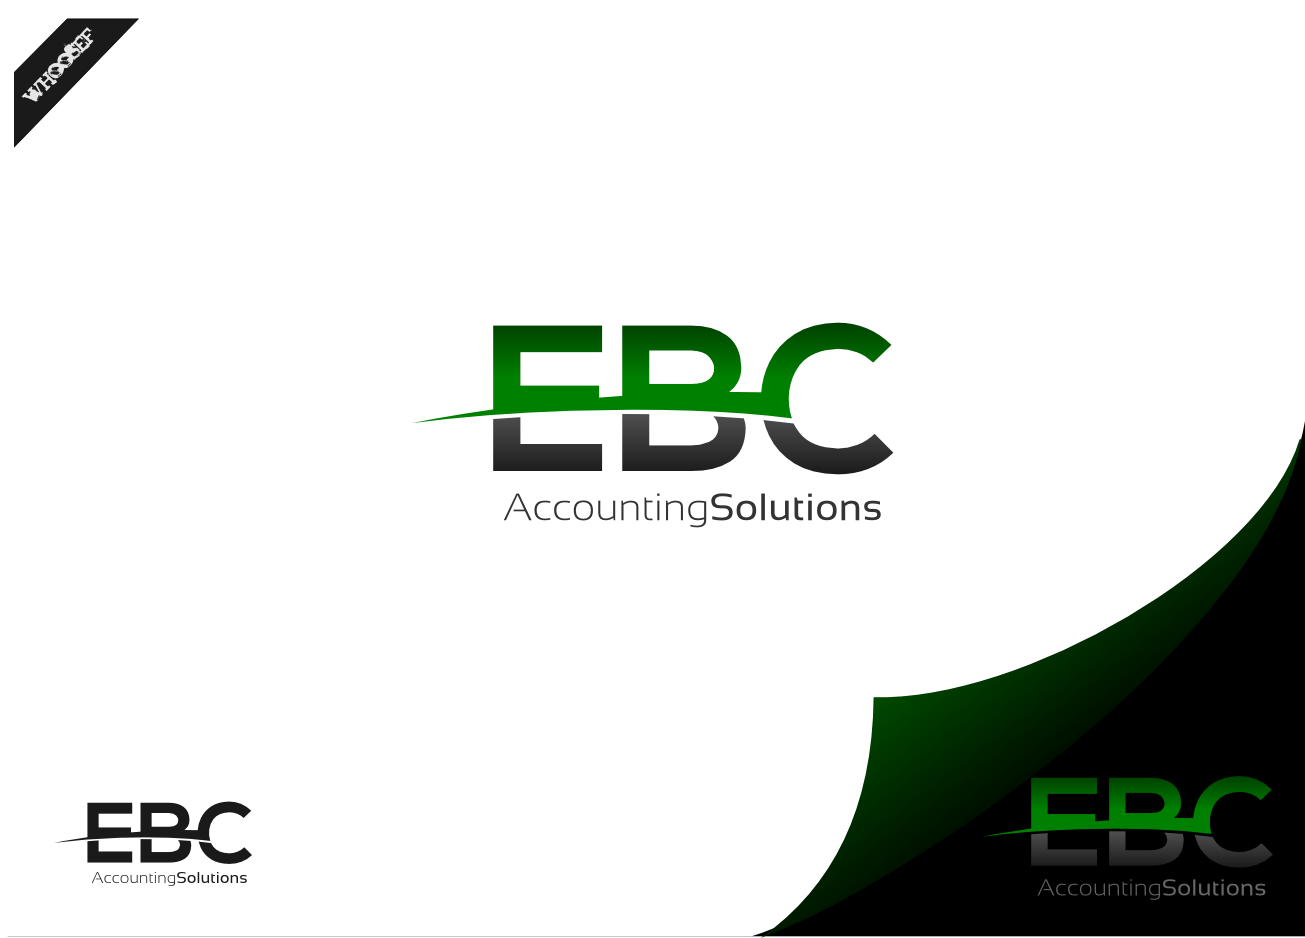 Logo Design by whoosef - Entry No. 113 in the Logo Design Contest New Logo Design for EBC Accounting Solutions.